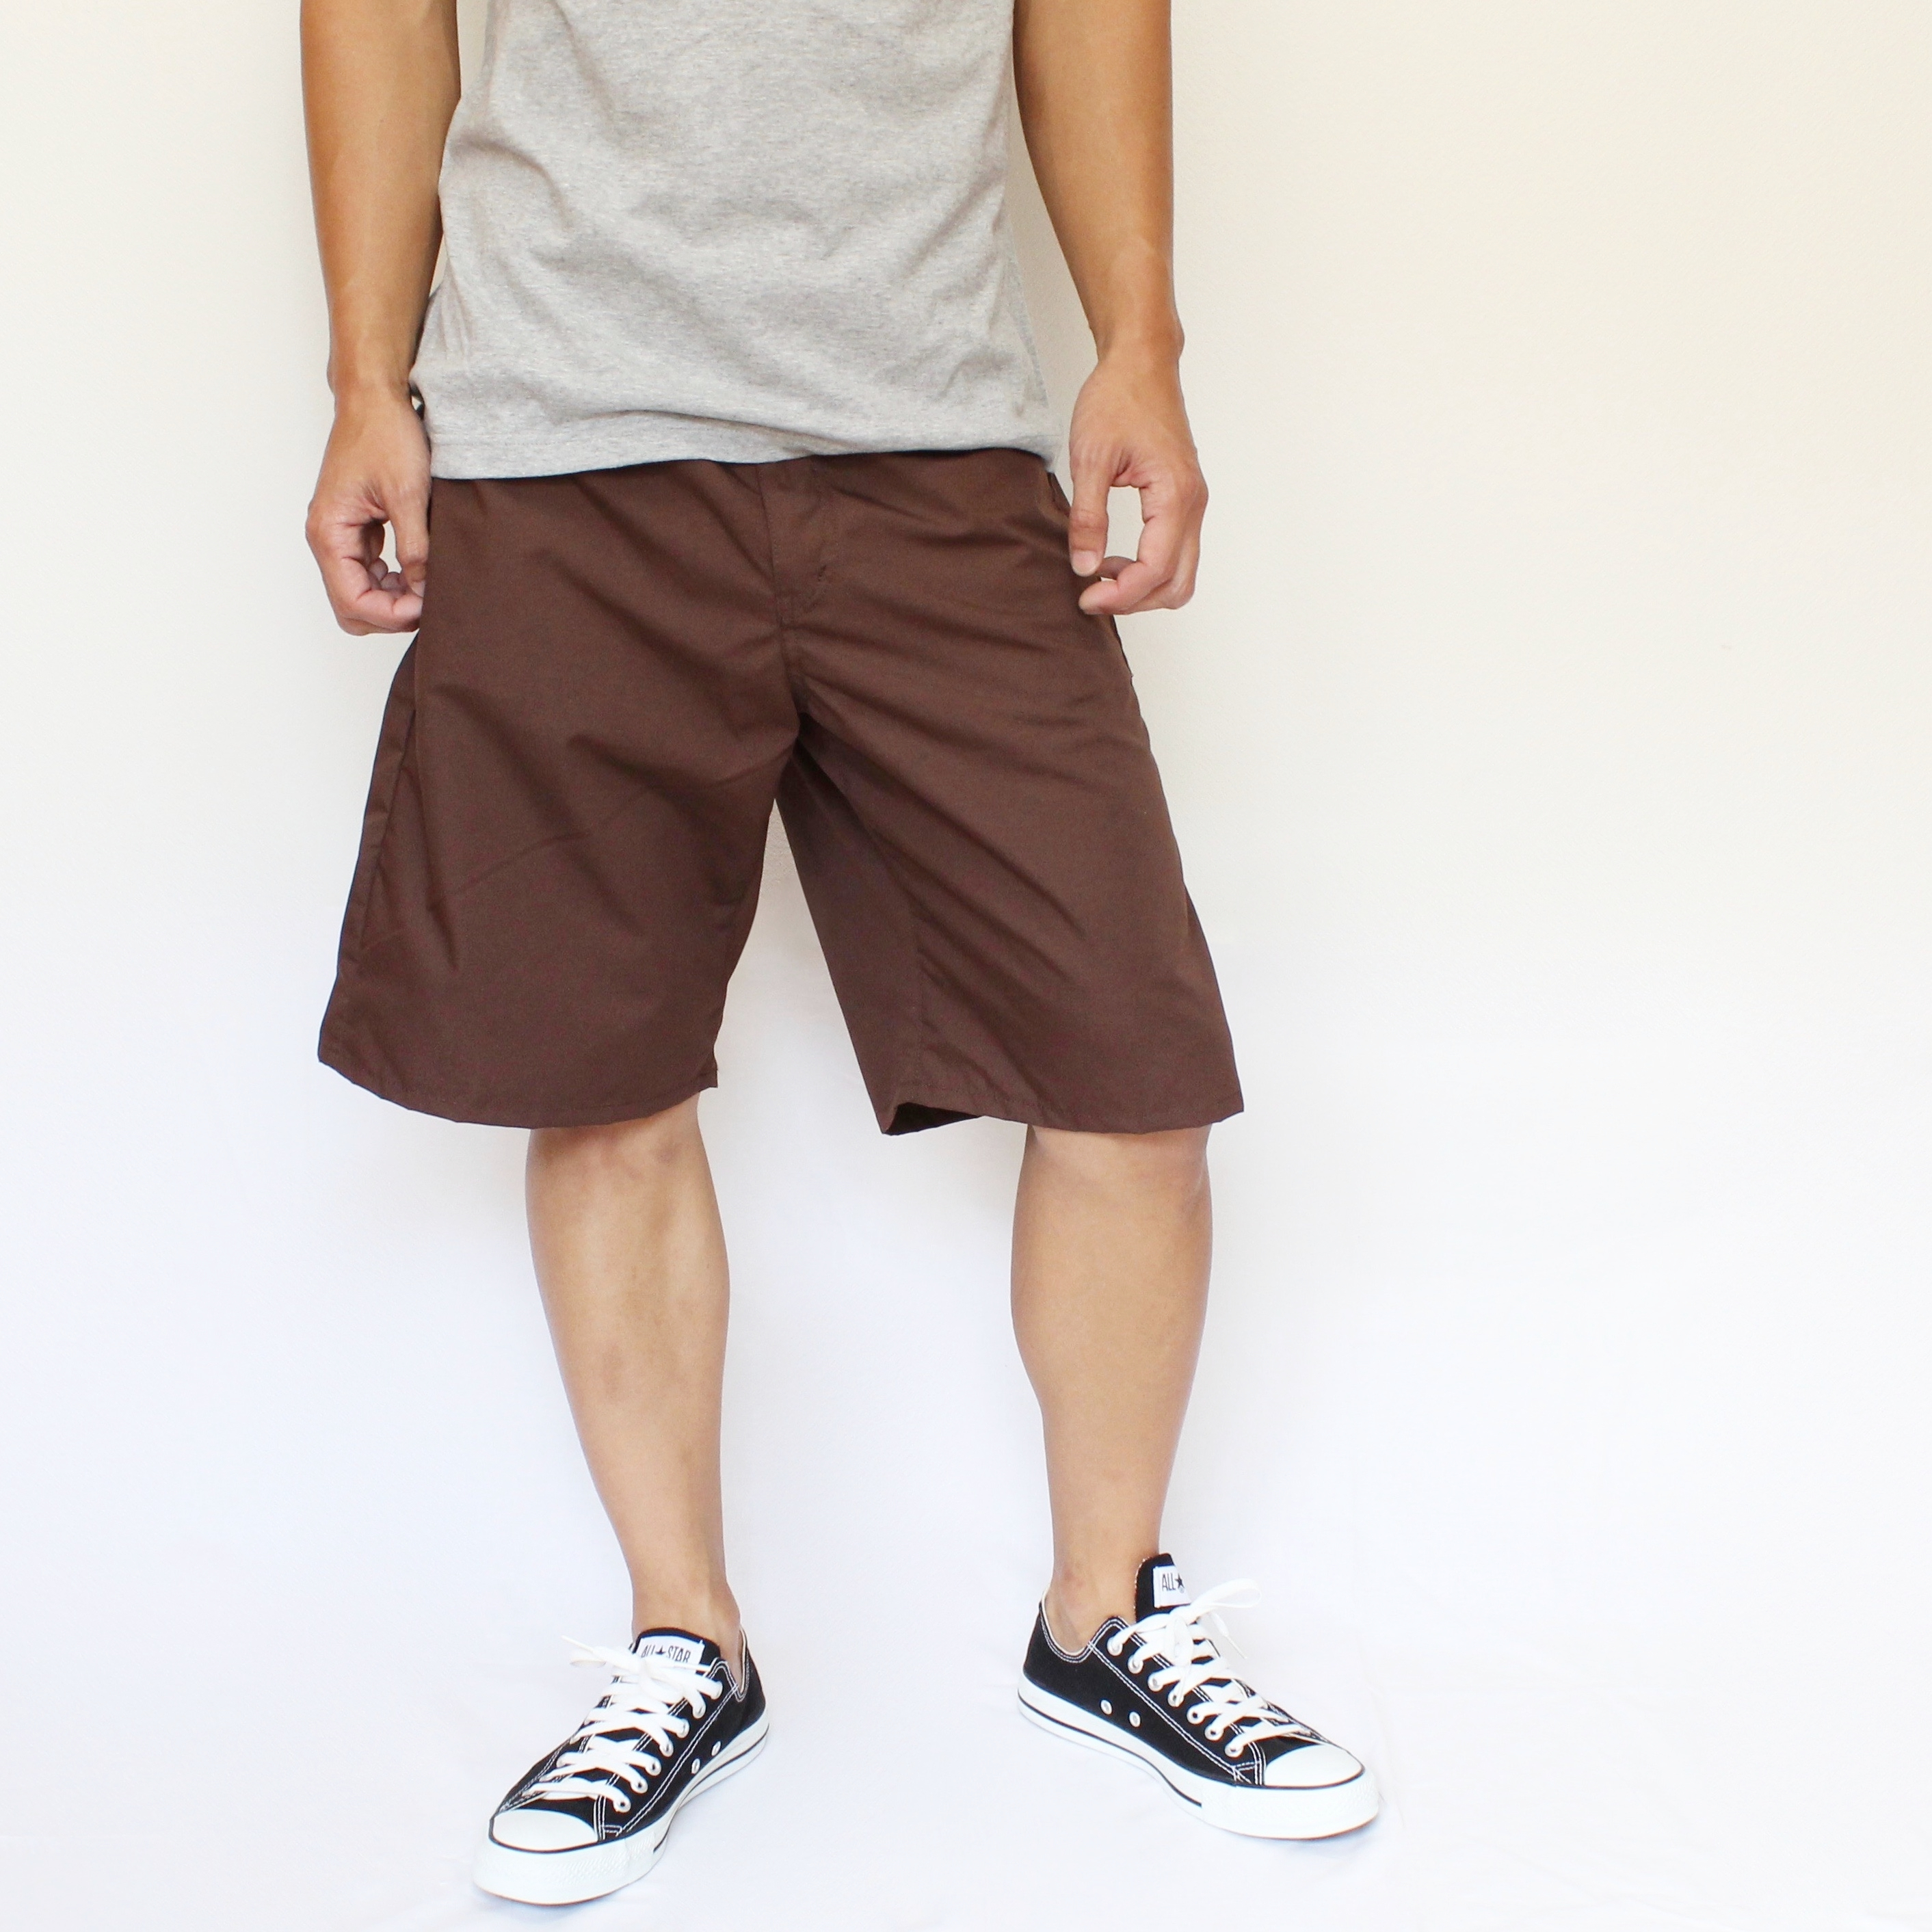 iggy shorts BROWN - 画像2